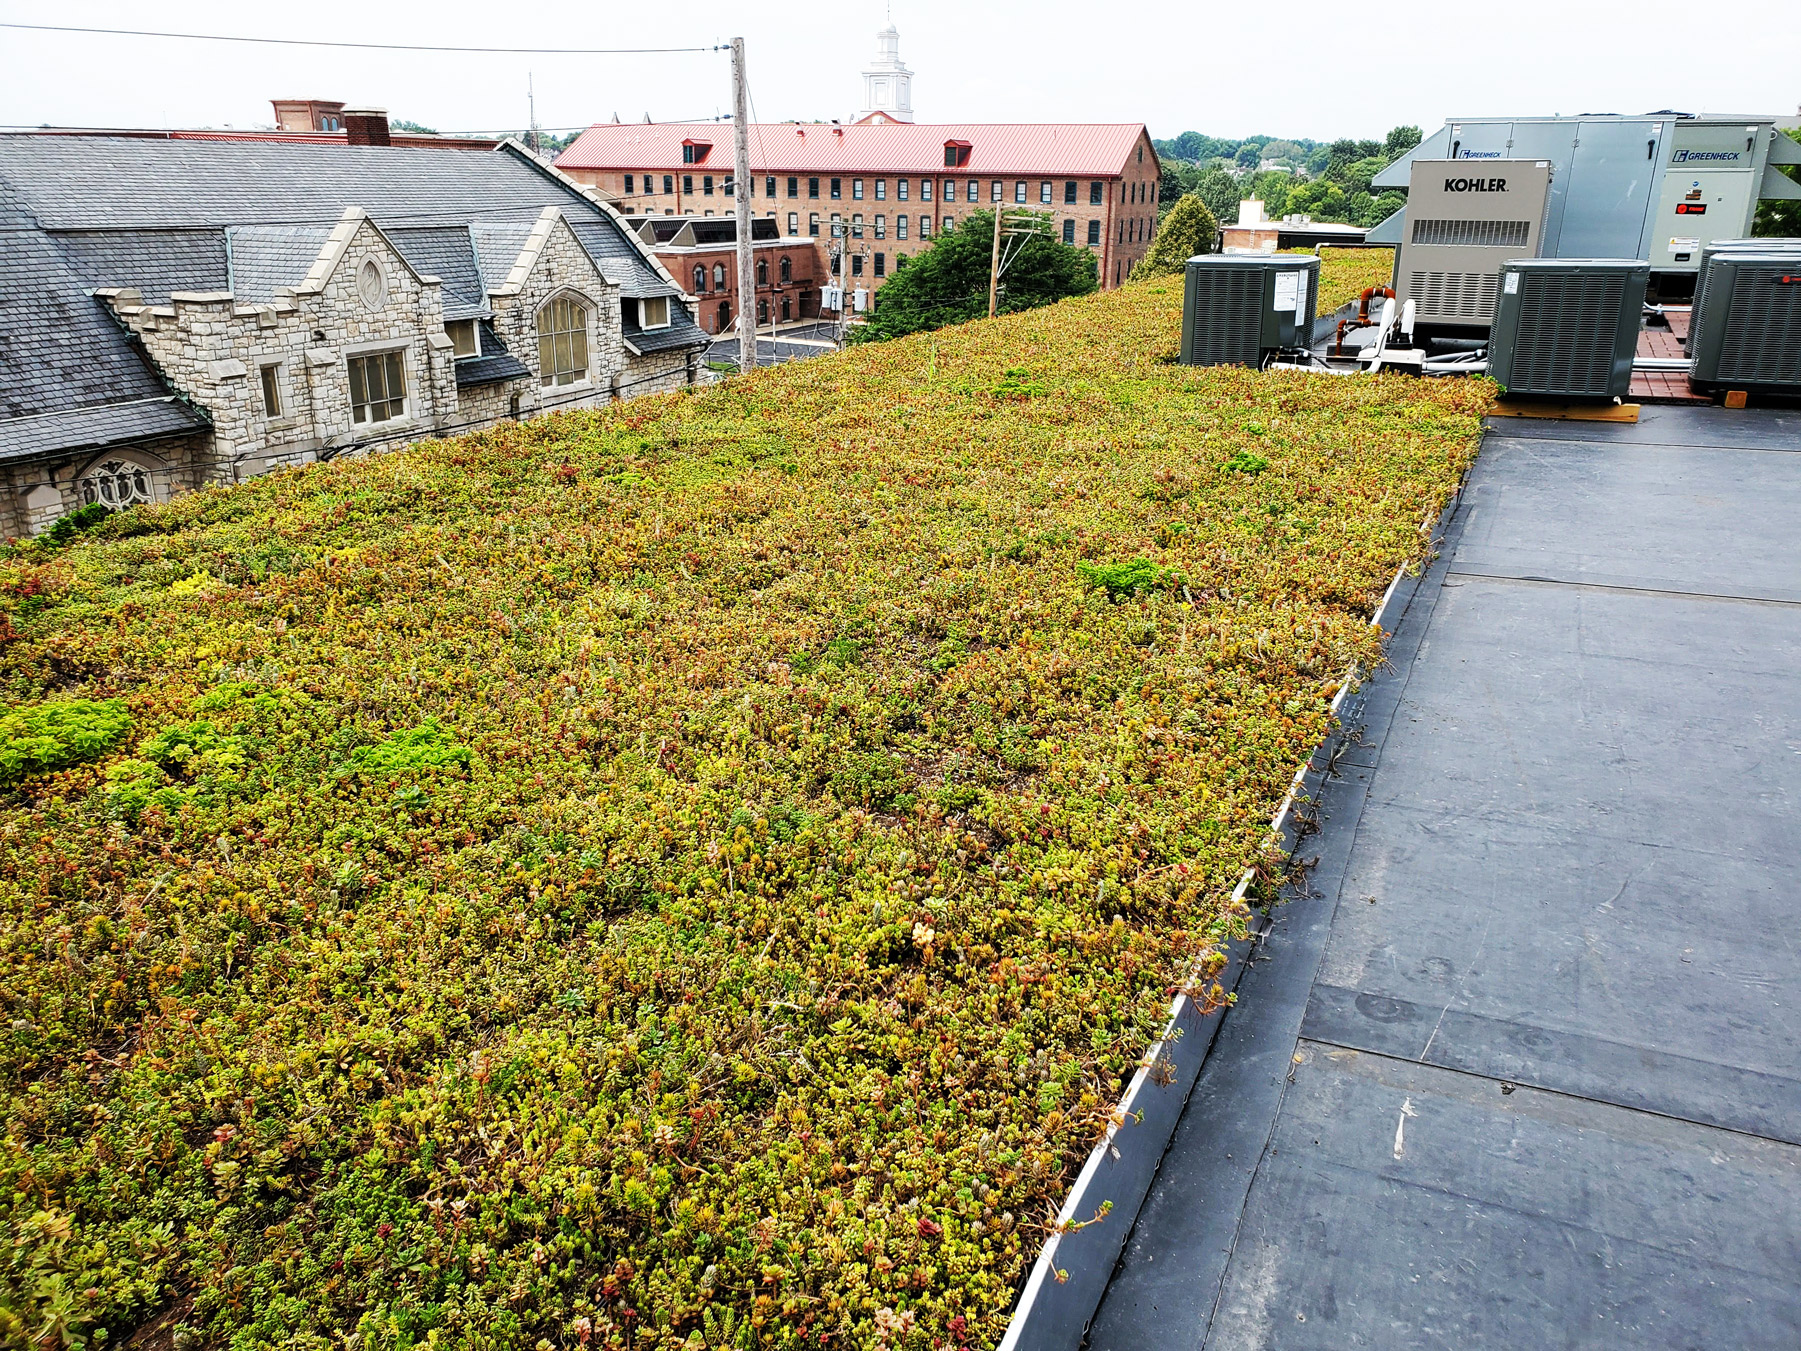 LEEC Lancaster Early Education Center's Green Roof! One of the only in Lancaster, PA! Creating Sustainability